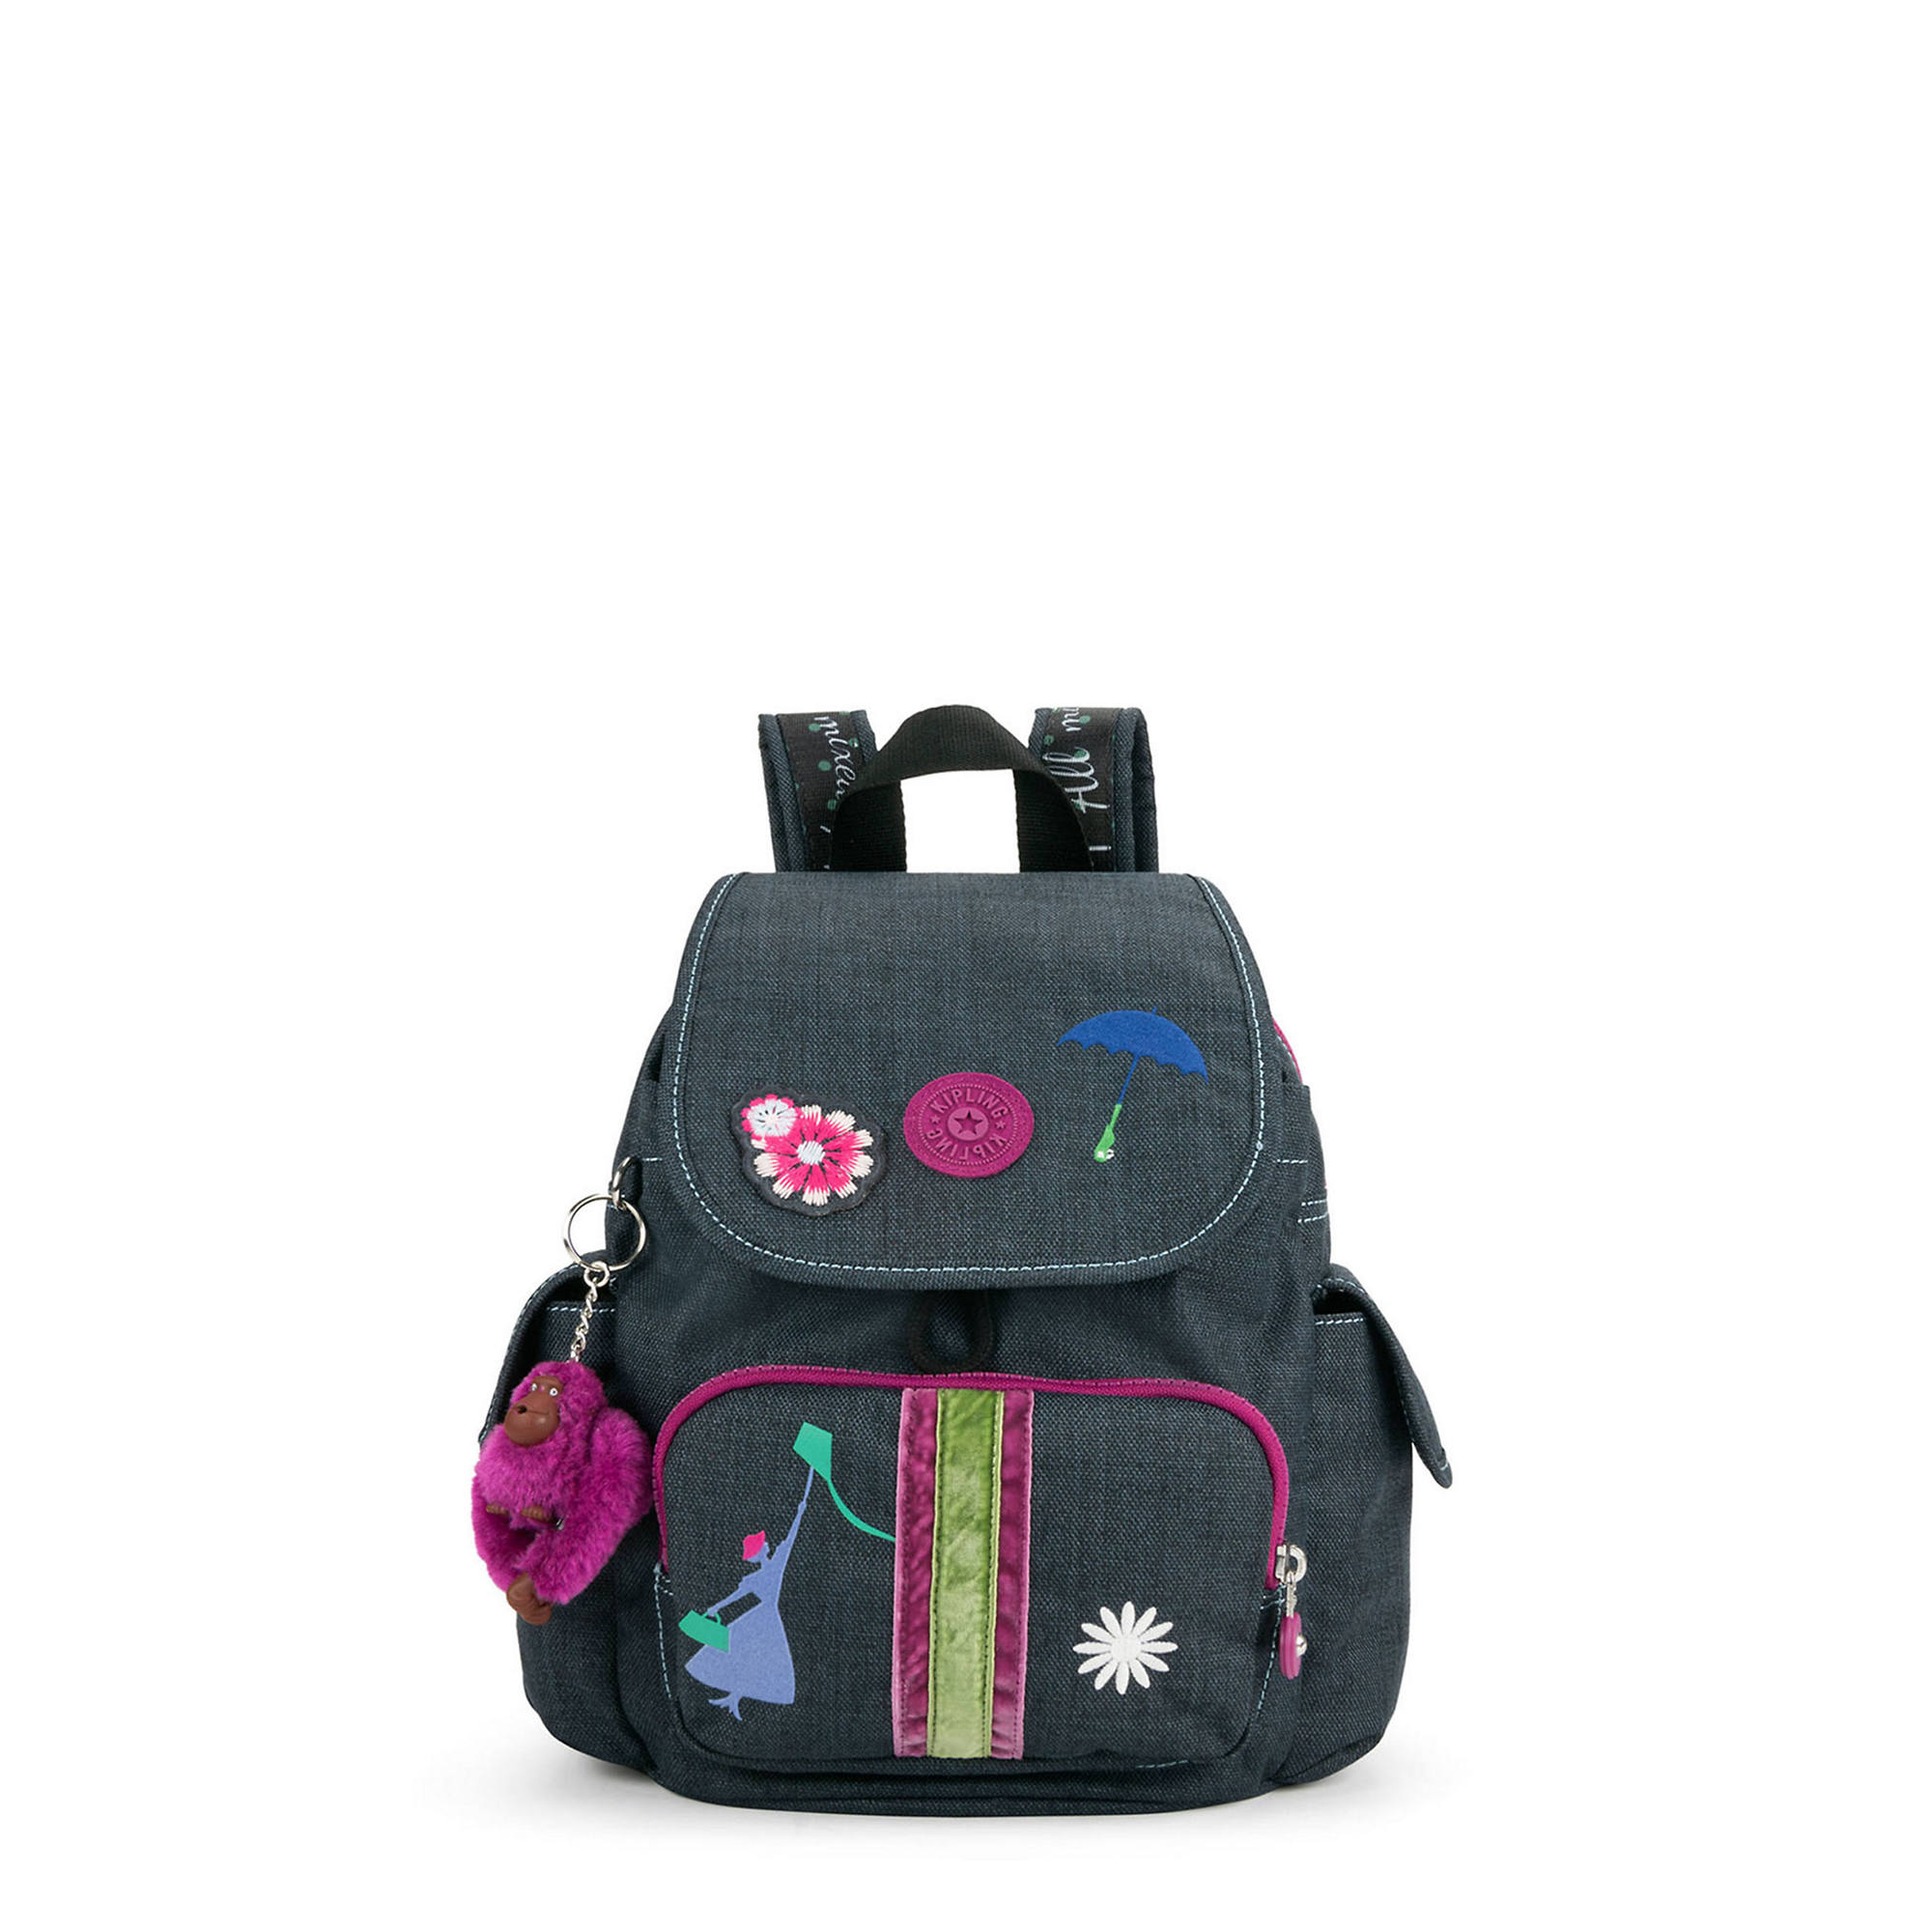 4516eb1ae1f53 Disney s Mary Poppins Returns City Pack Extra Small Backpack